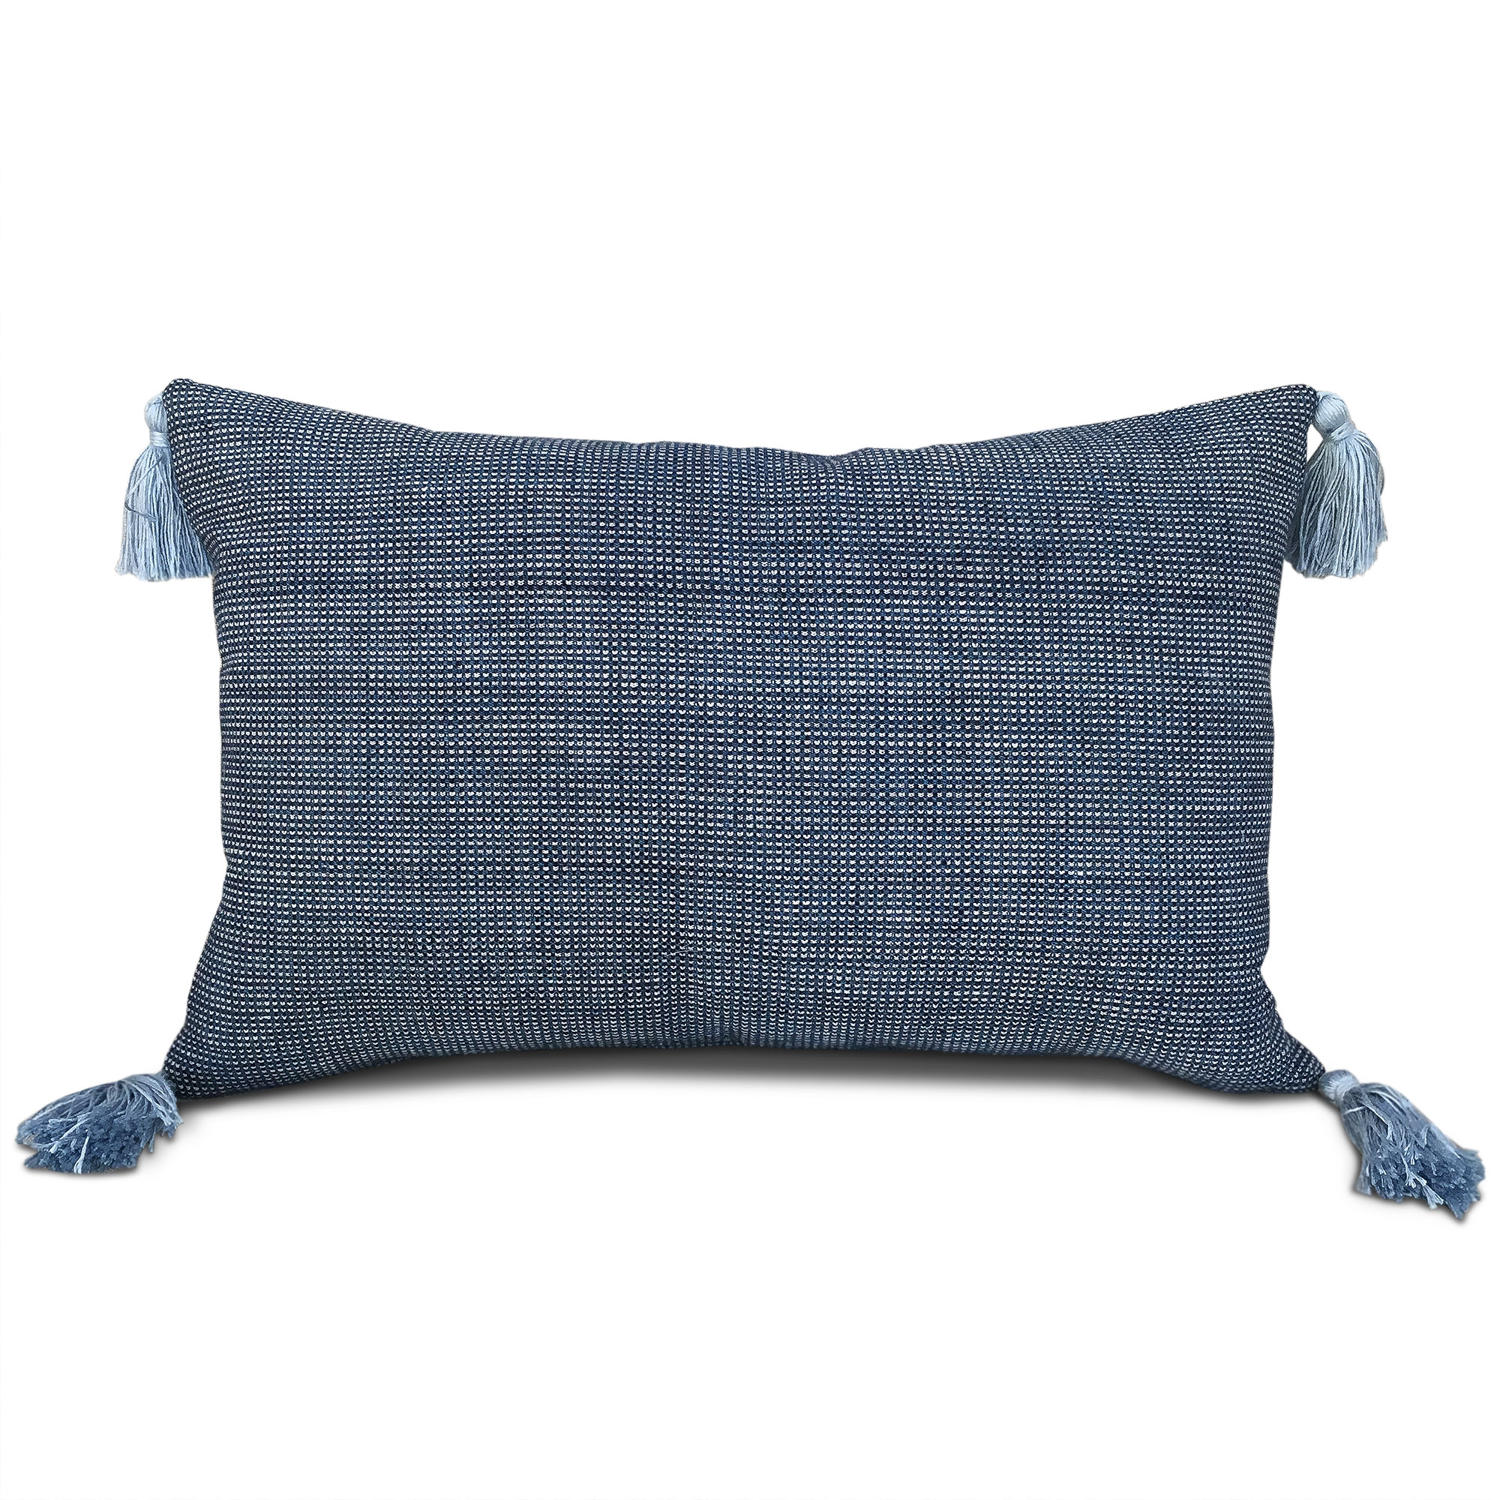 Shui Cushion with Blue Tassels